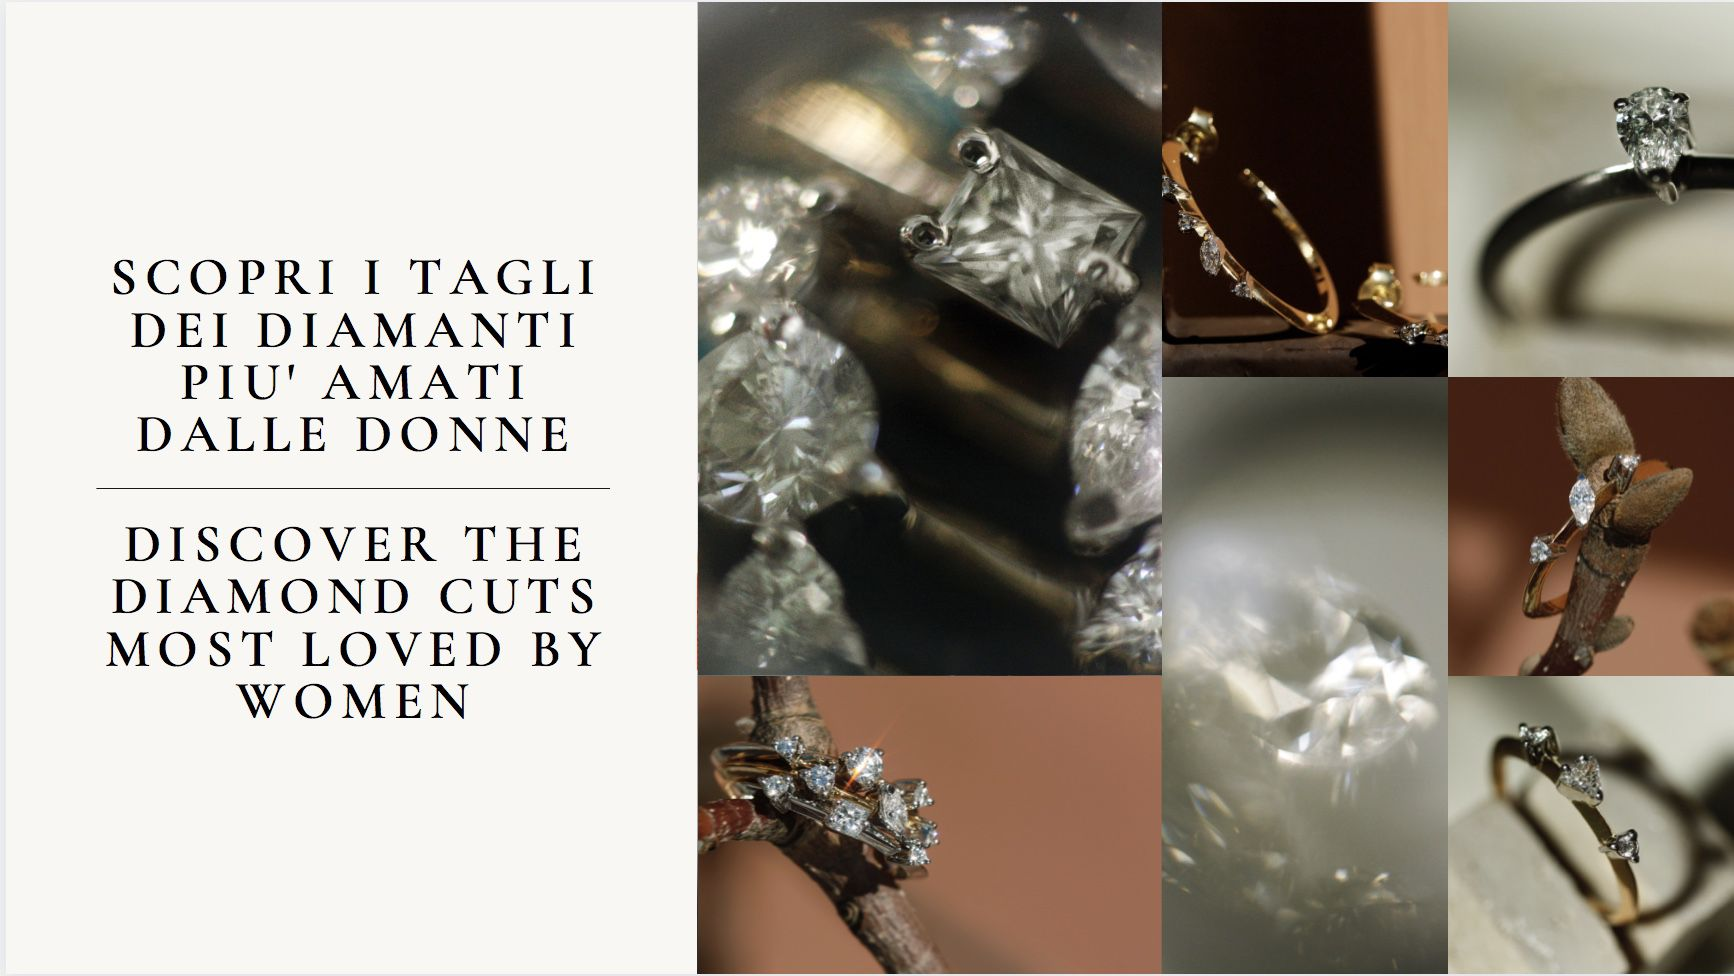 The best gift is the one you can't stop looking at! DISCOVER THE DIAMOND CUTS MOST LOVED BY WOMEN